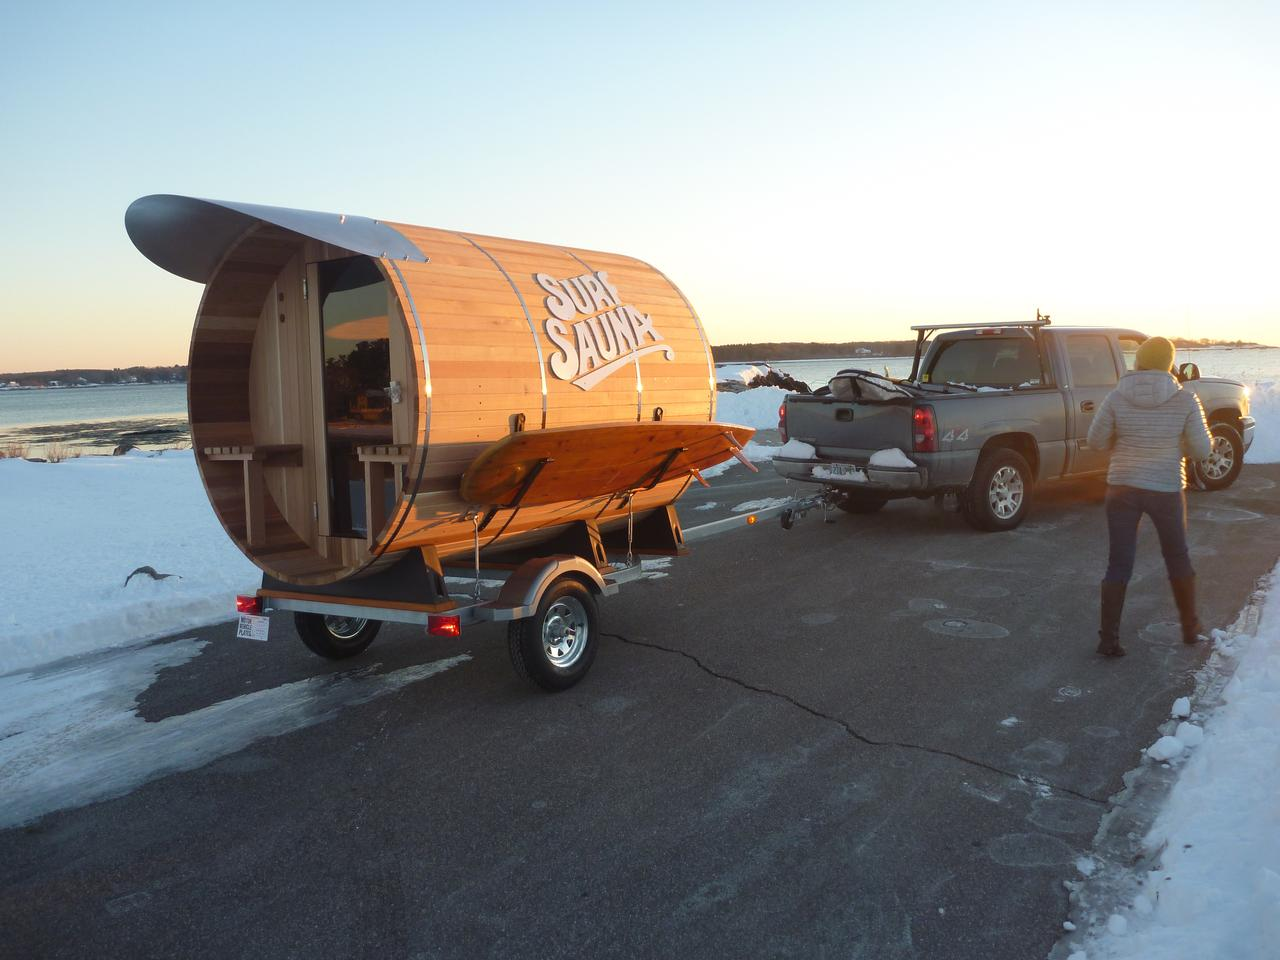 The wood used for construction is hard-wearing rot-resistant Western Red Cedar wood (Photo: Surf Sauna)